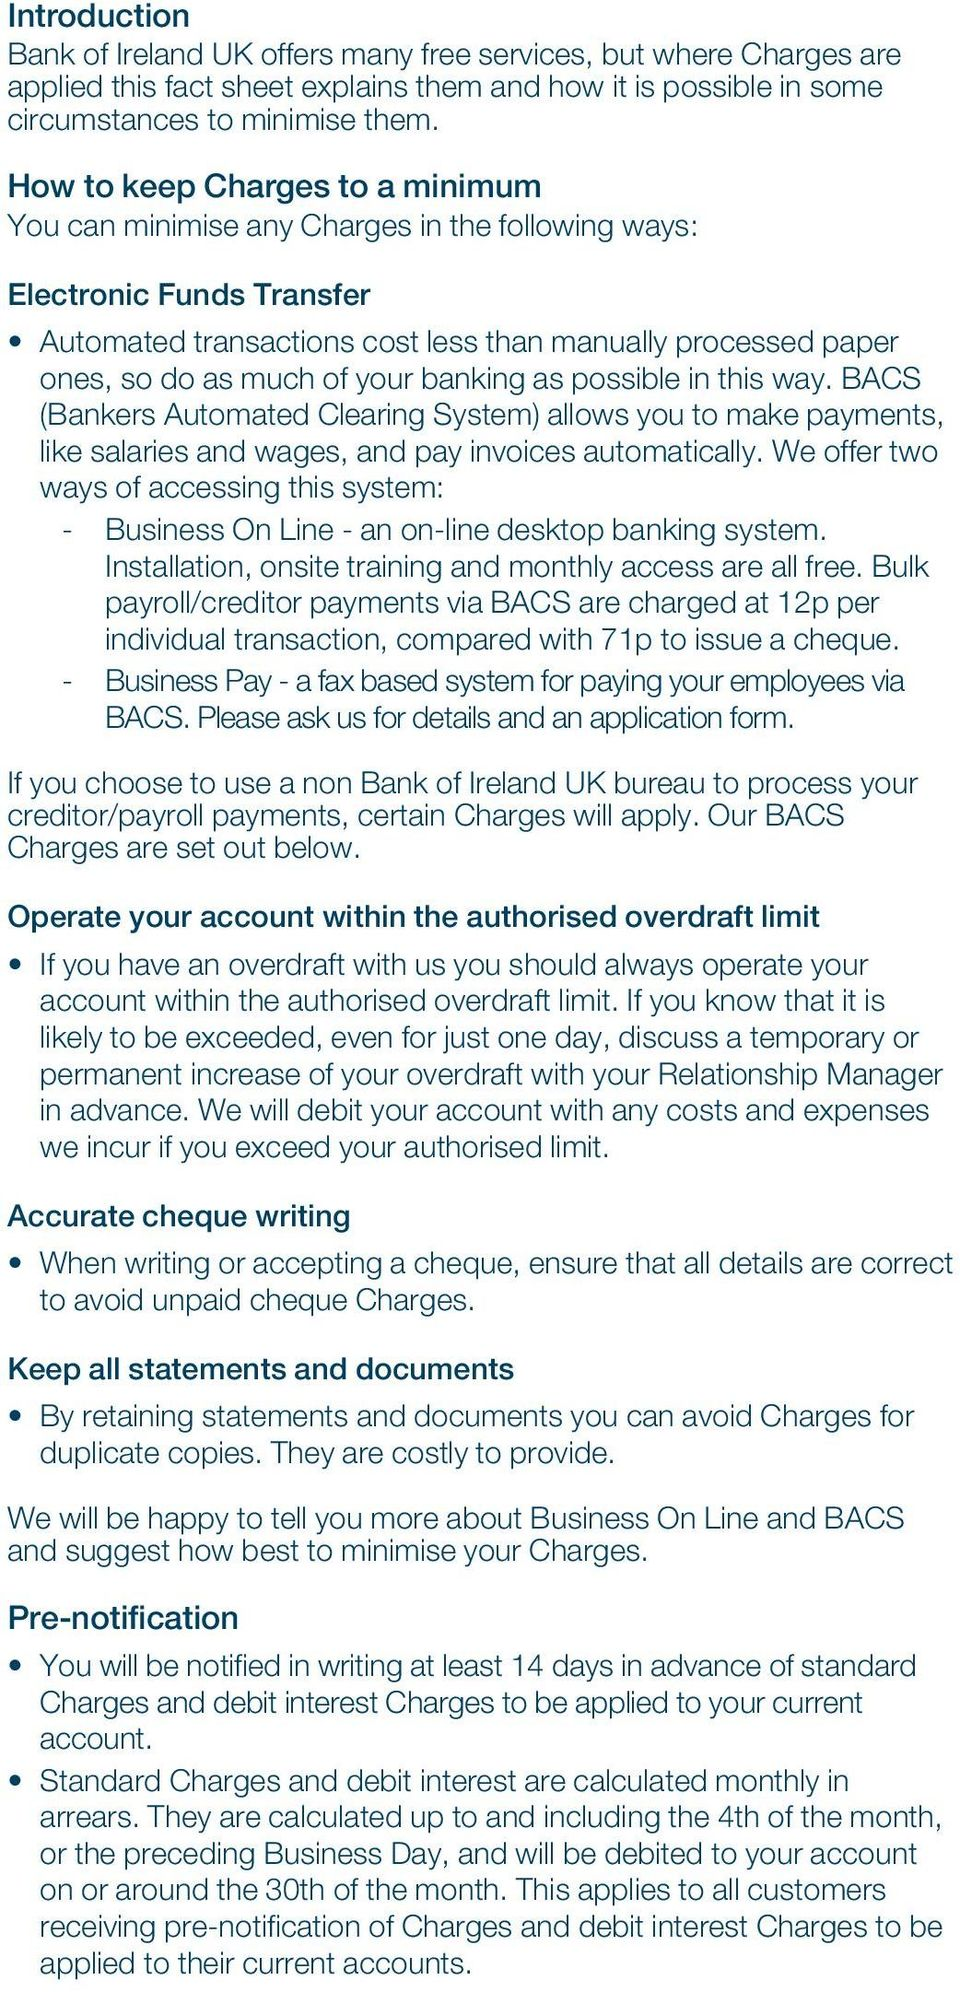 your banking as possible in this way. BACS (Bankers Automated Clearing System) allows you to make payments, like salaries and wages, and pay invoices automatically.